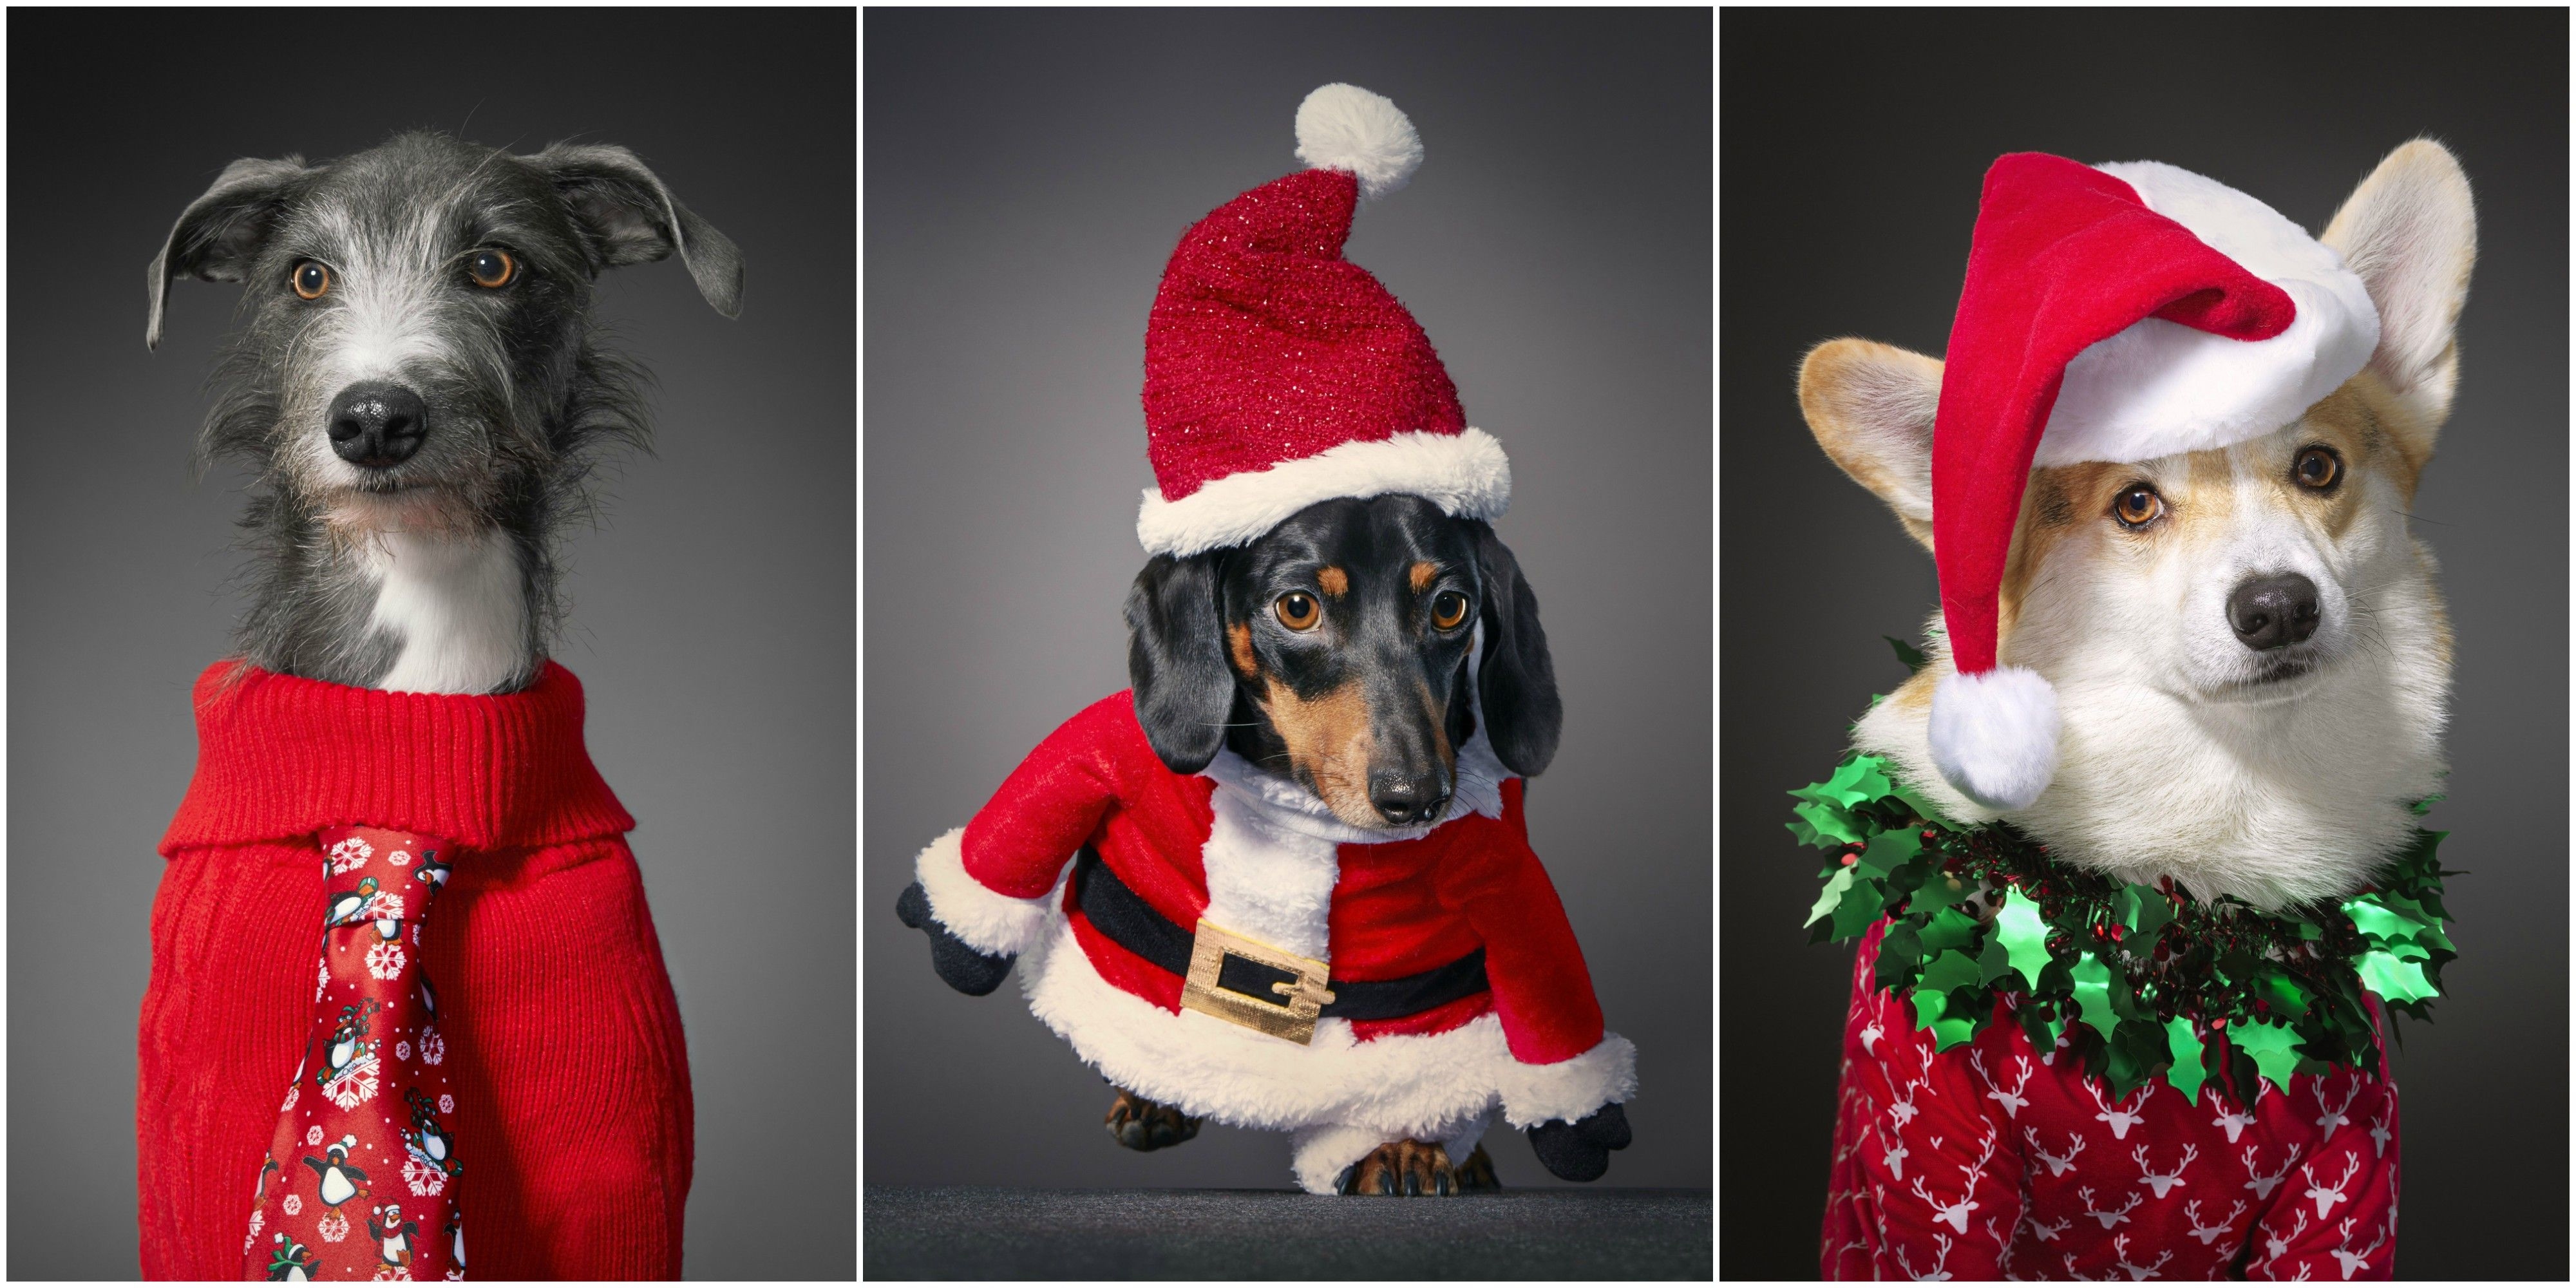 12 Dogs Of Christmas.This 12 Dogs Of Christmas Gallery Raising Money For